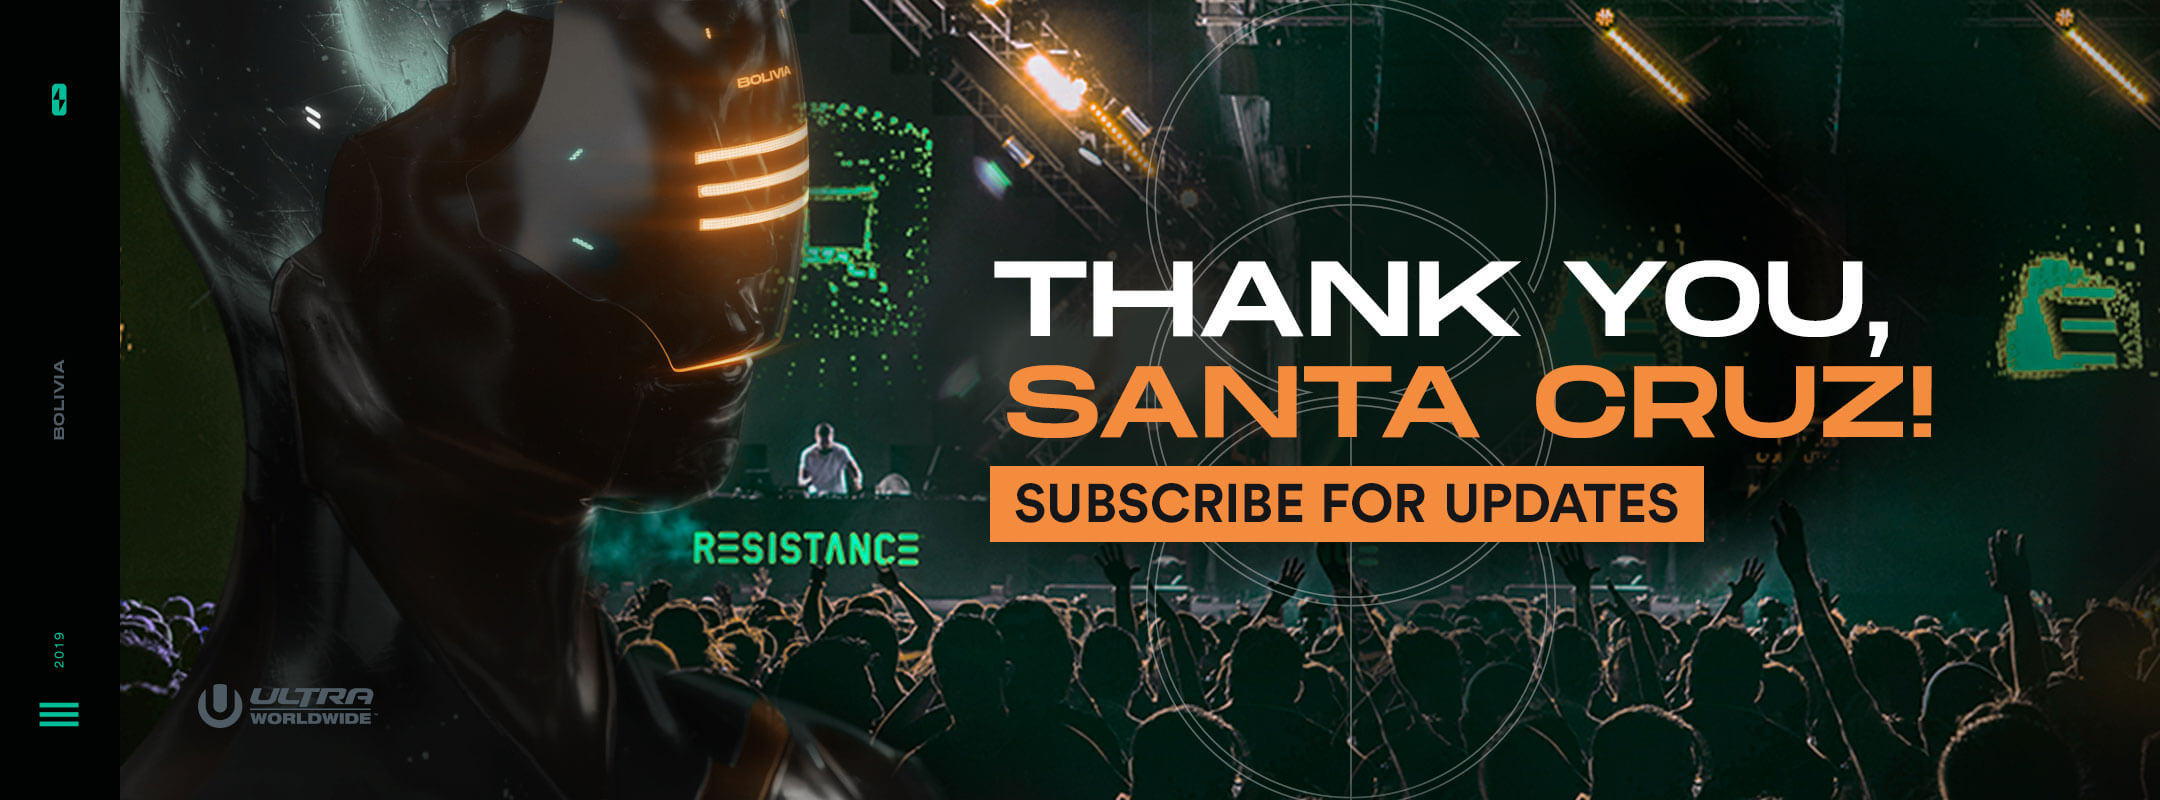 Subscribe for Updates for RESISTANCE Santa Cruz